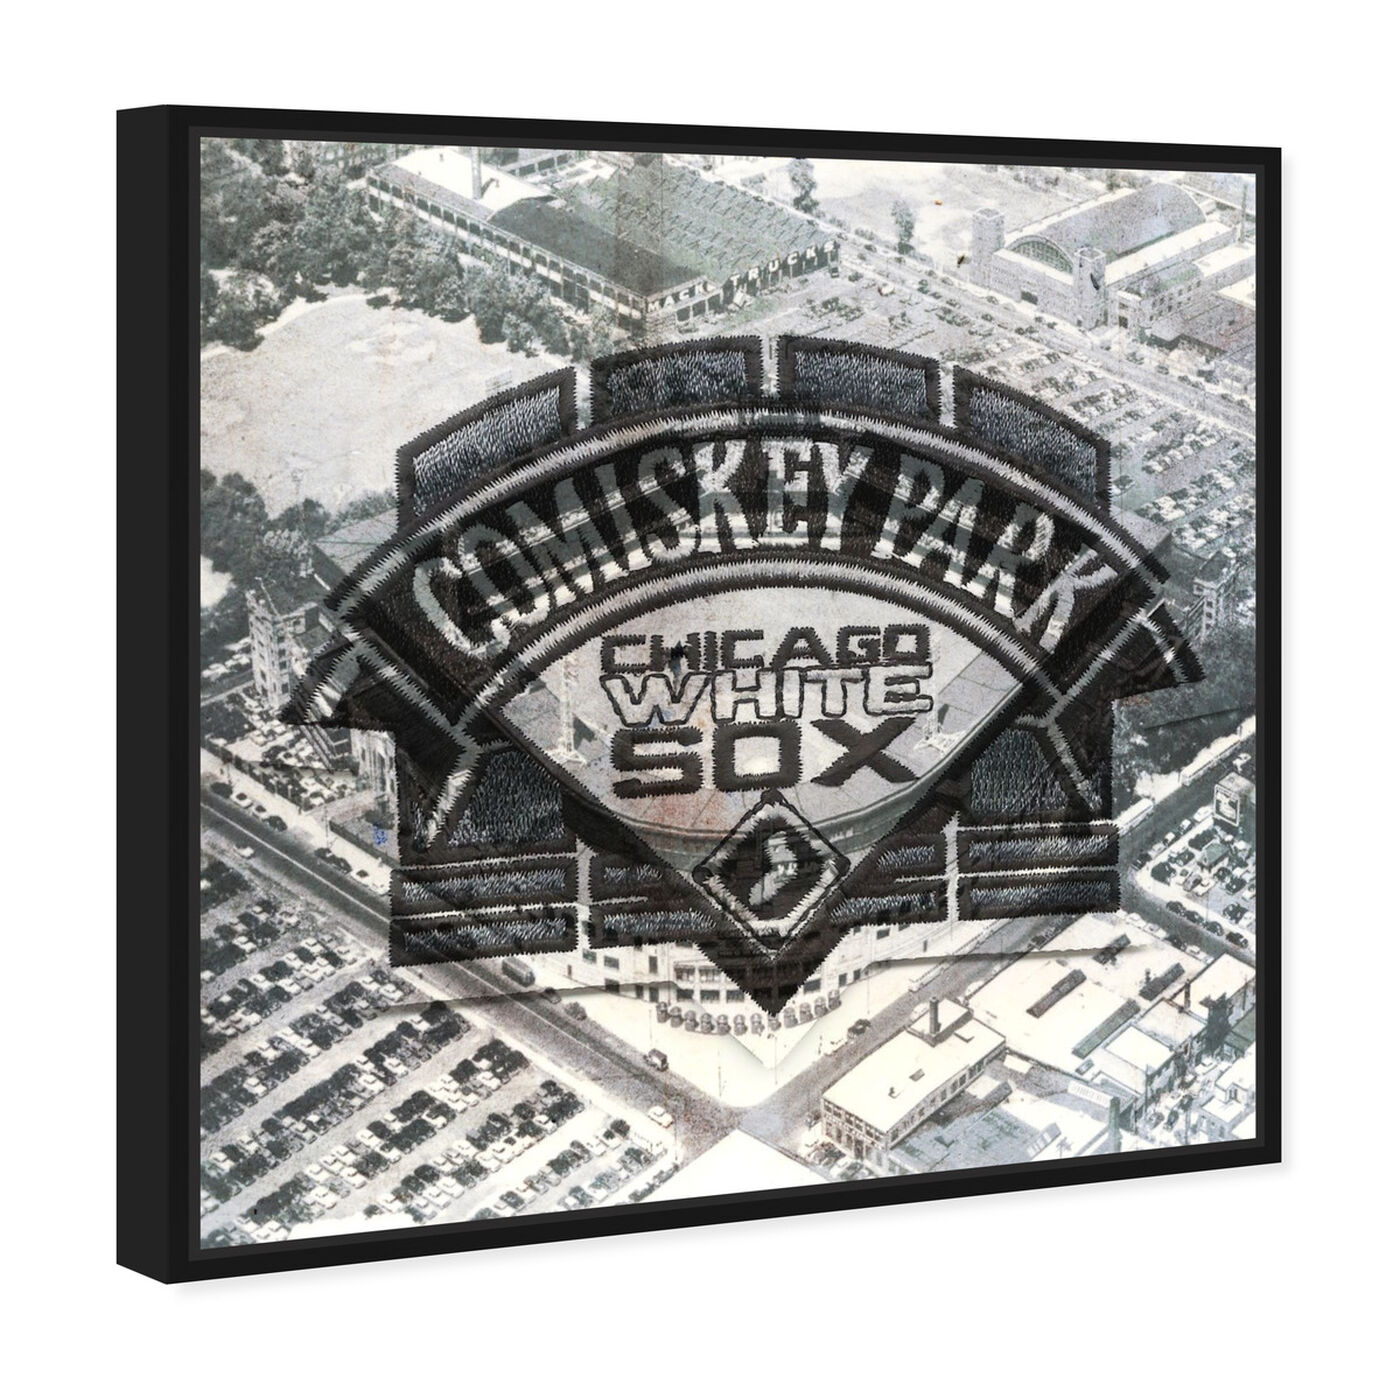 Angled view of Comiskey Park White Sox featuring cities and skylines and united states cities art.